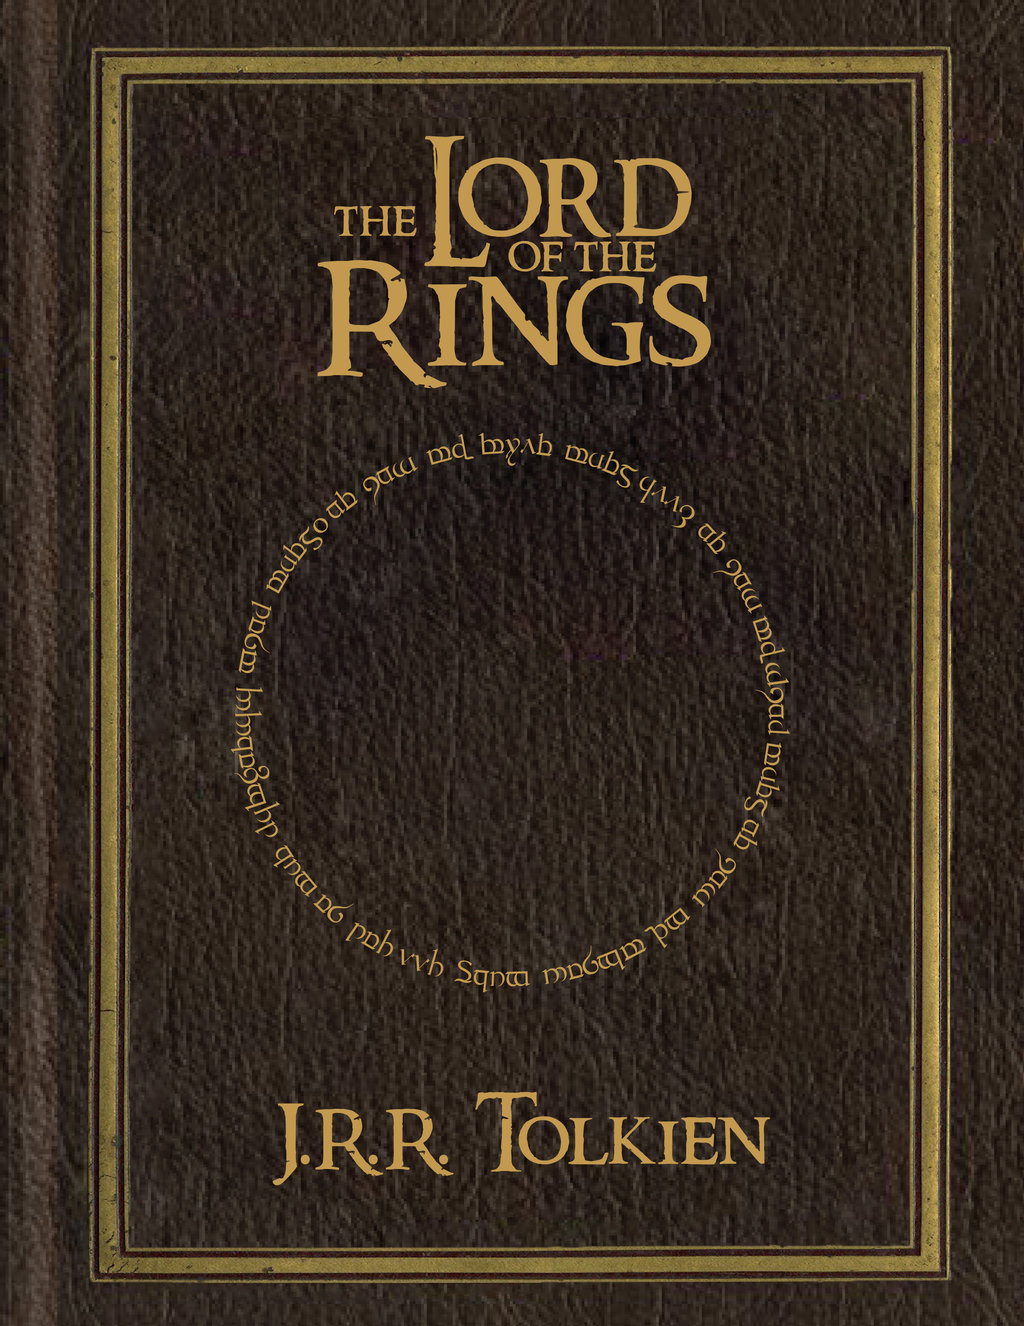 lord_of_the_rings_book.jpg